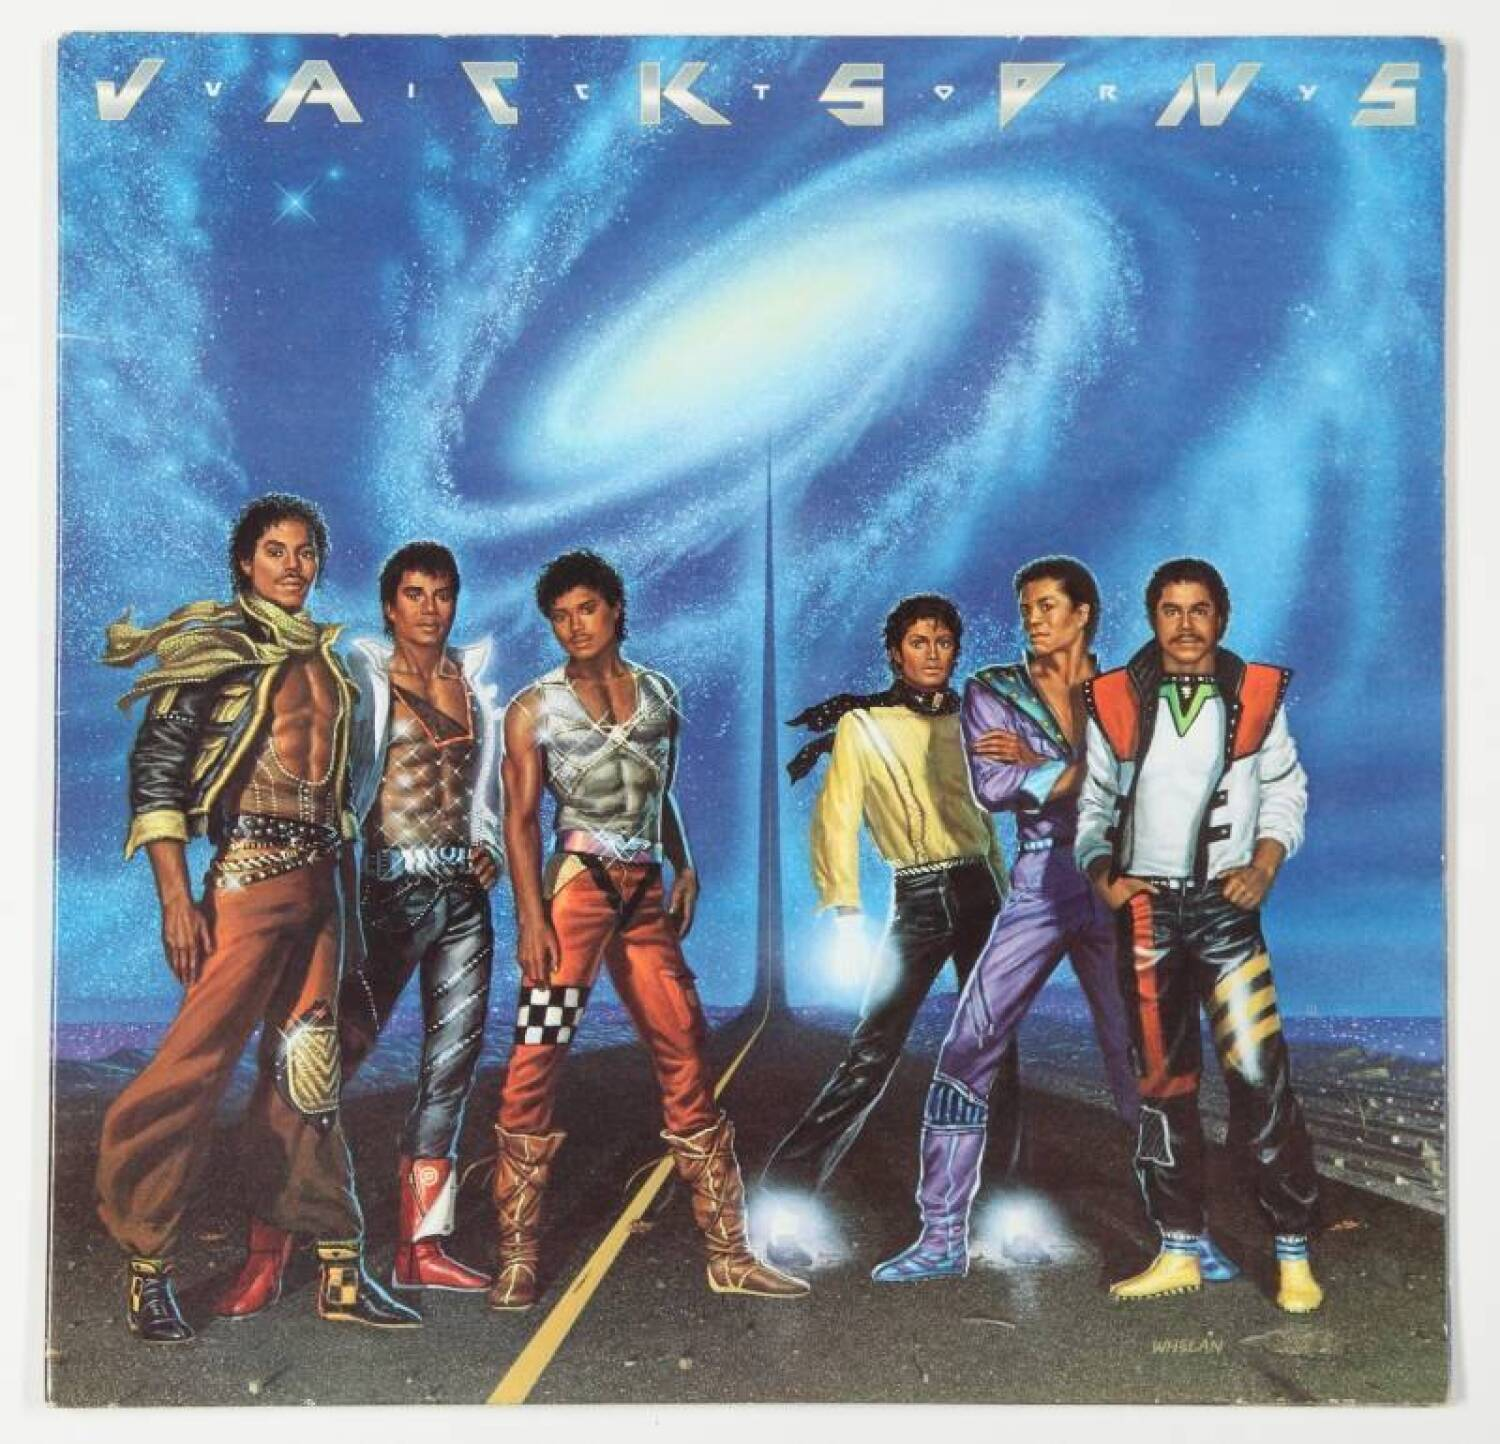 THE JACKSONS SIGNED VICTORY ALBUM  Current price 500